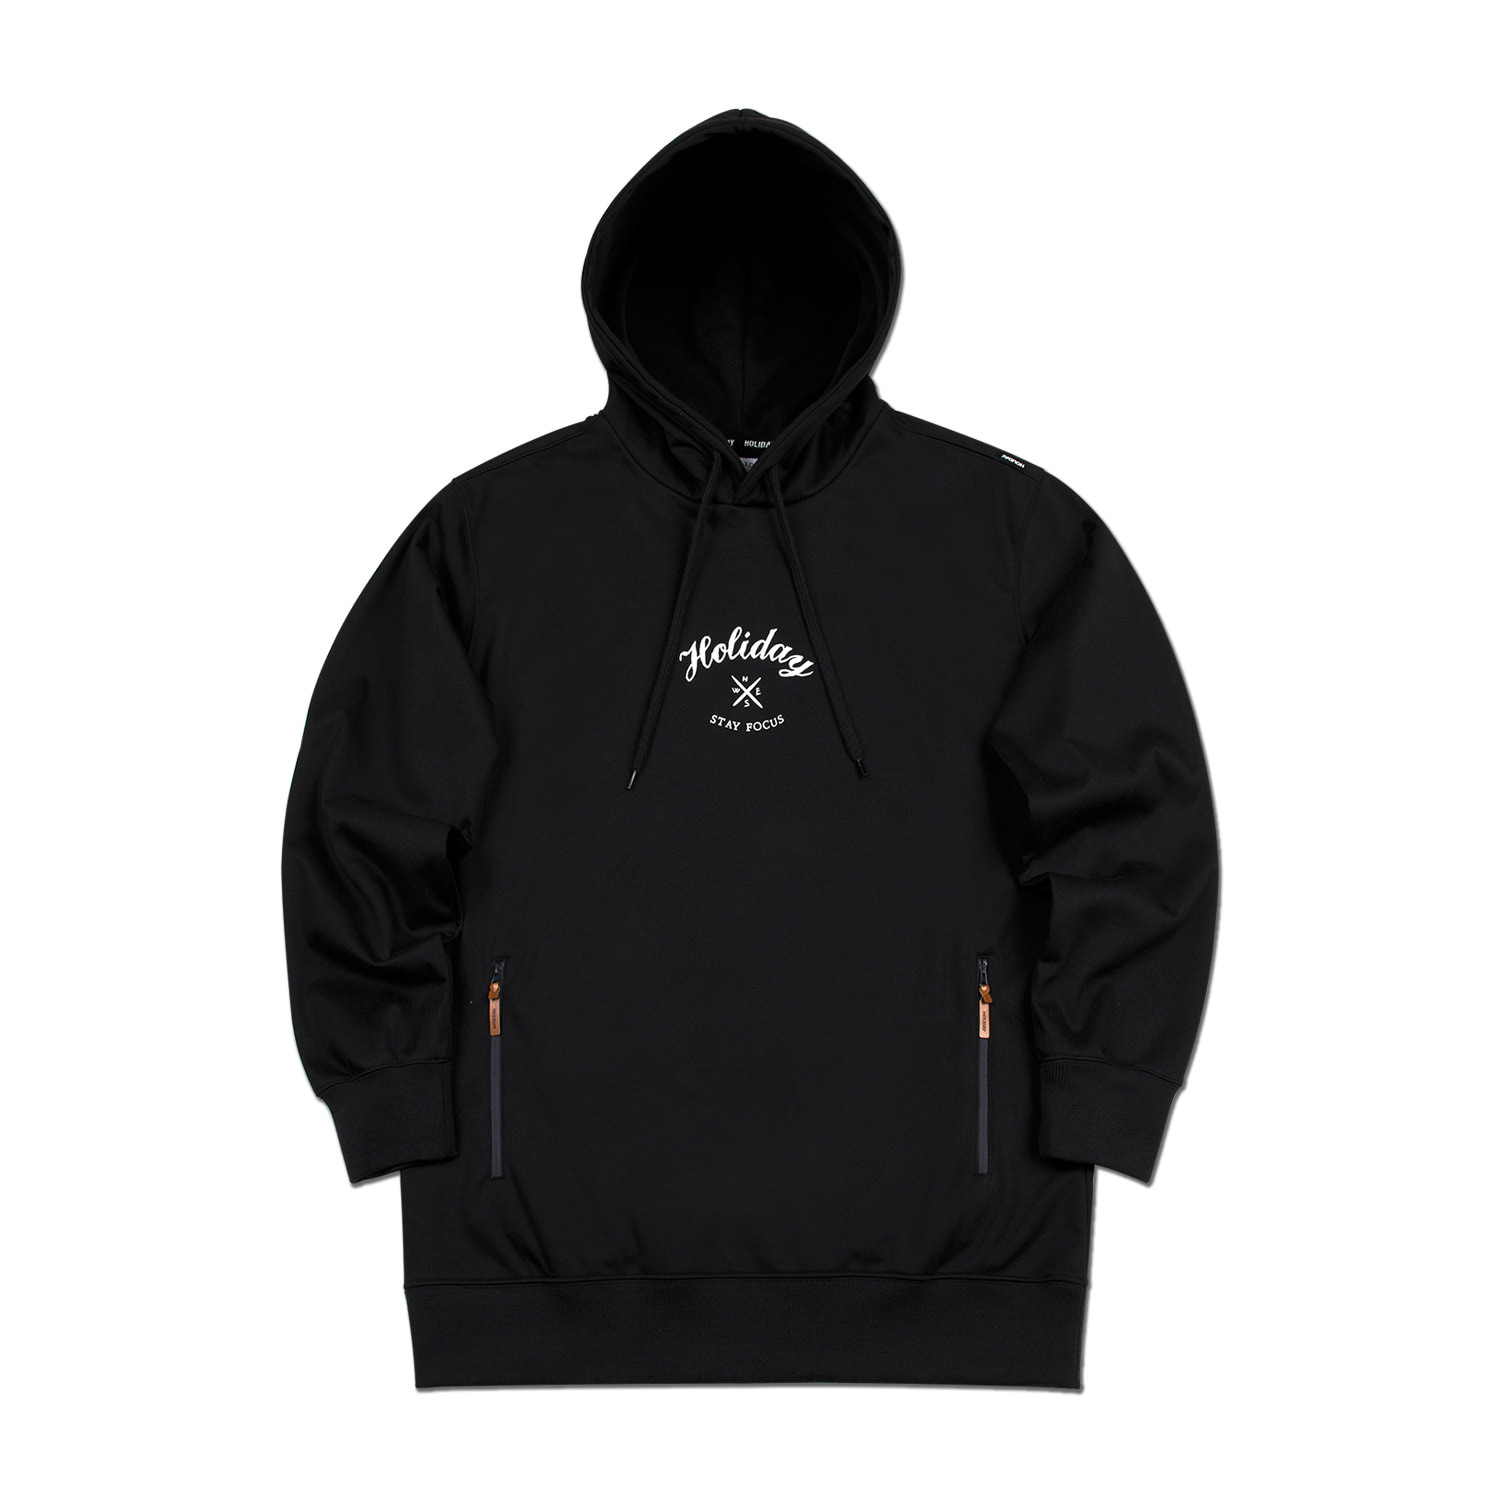 FORBIDDEN waterproof hoodie - blackHOLIDAY OUTERWEAR